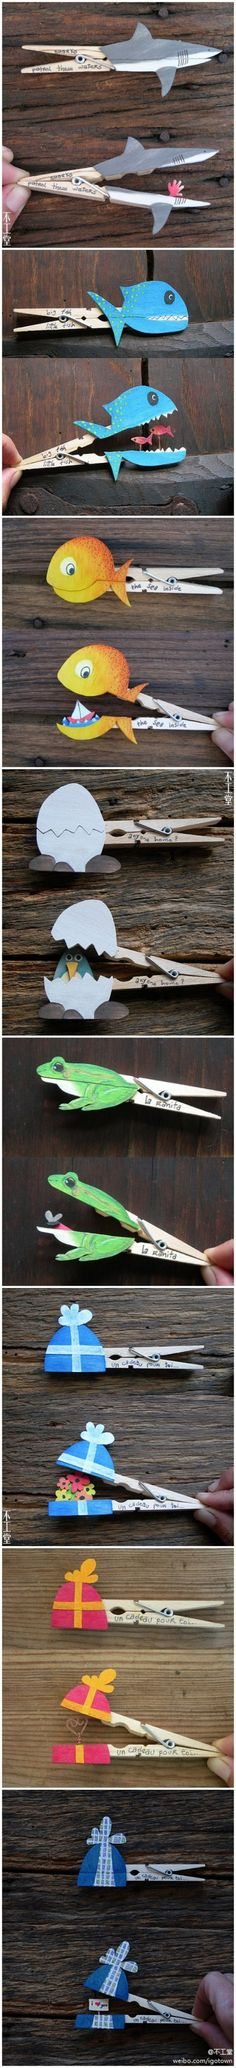 Tinkering with clothespins Cute Crafts, Crafts To Do, Diy Crafts, Arts And Crafts, Funny Crafts For Kids, Wooden Crafts, Diy For Kids, Projects For Kids, Santa Crafts For Kids To Make